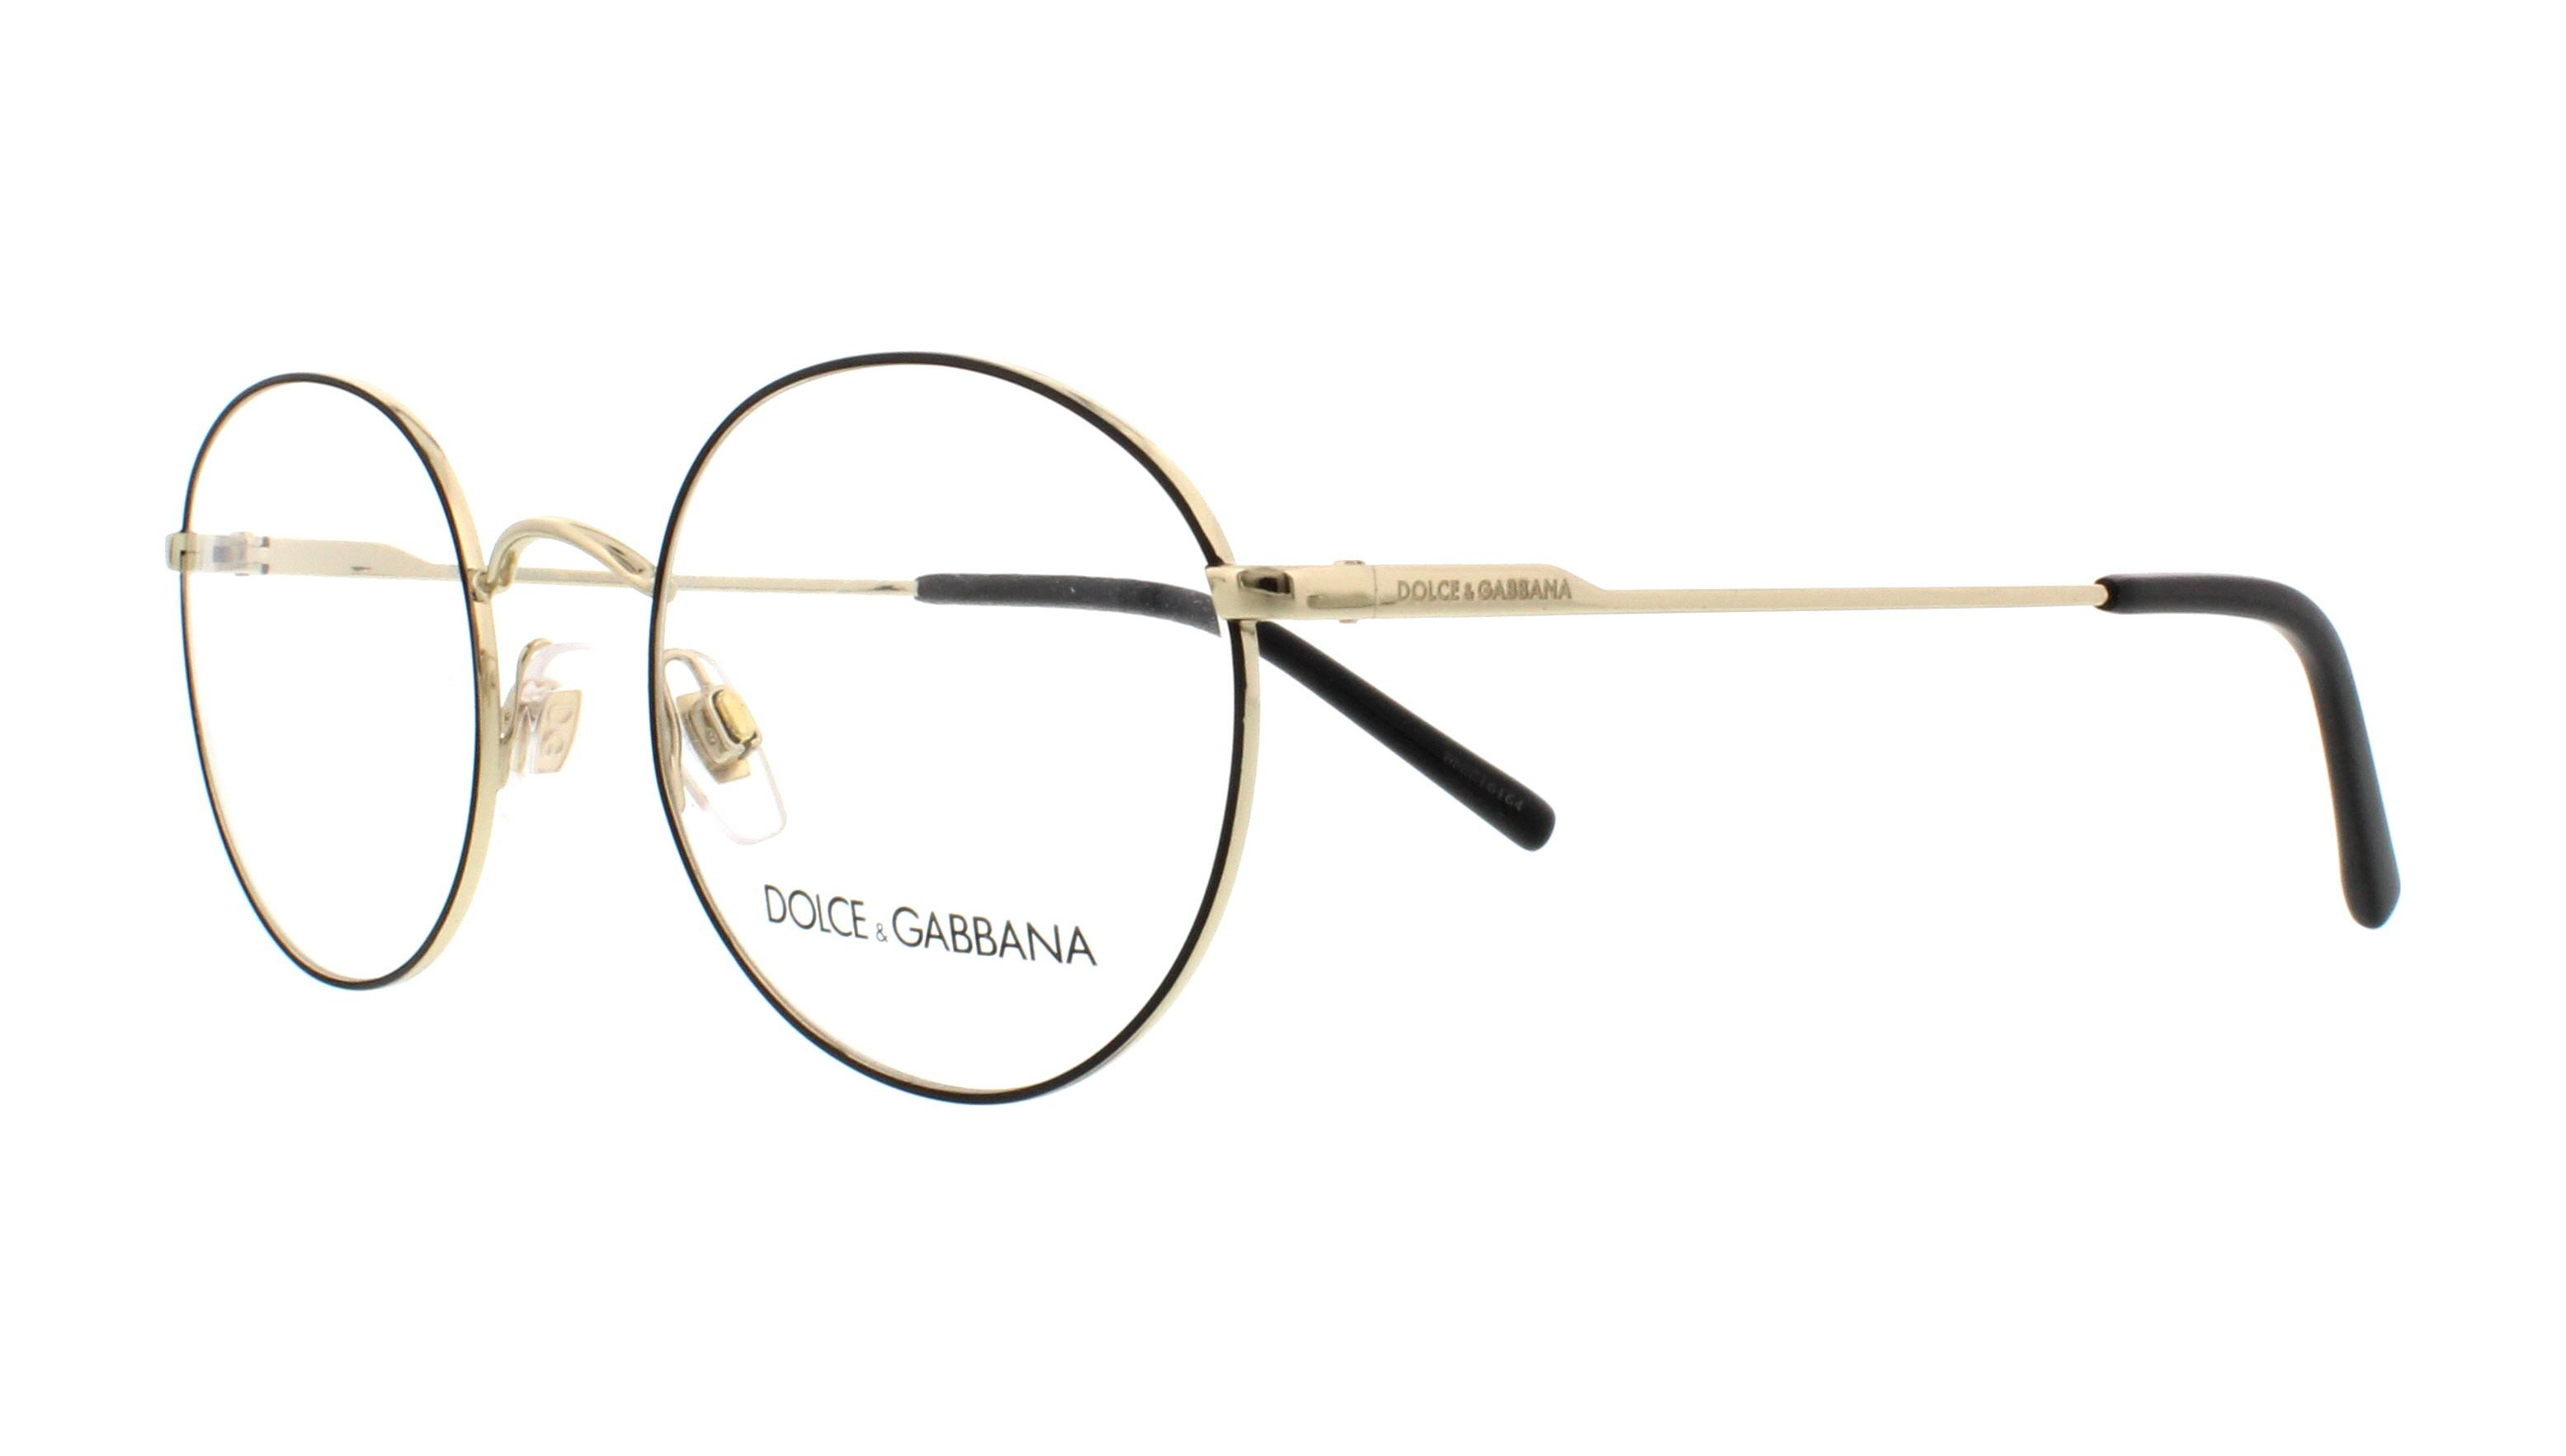 DOLCE & GABBANA Eyeglasses DG1290 1305 Matte Black/Pale Gold 50MM ...